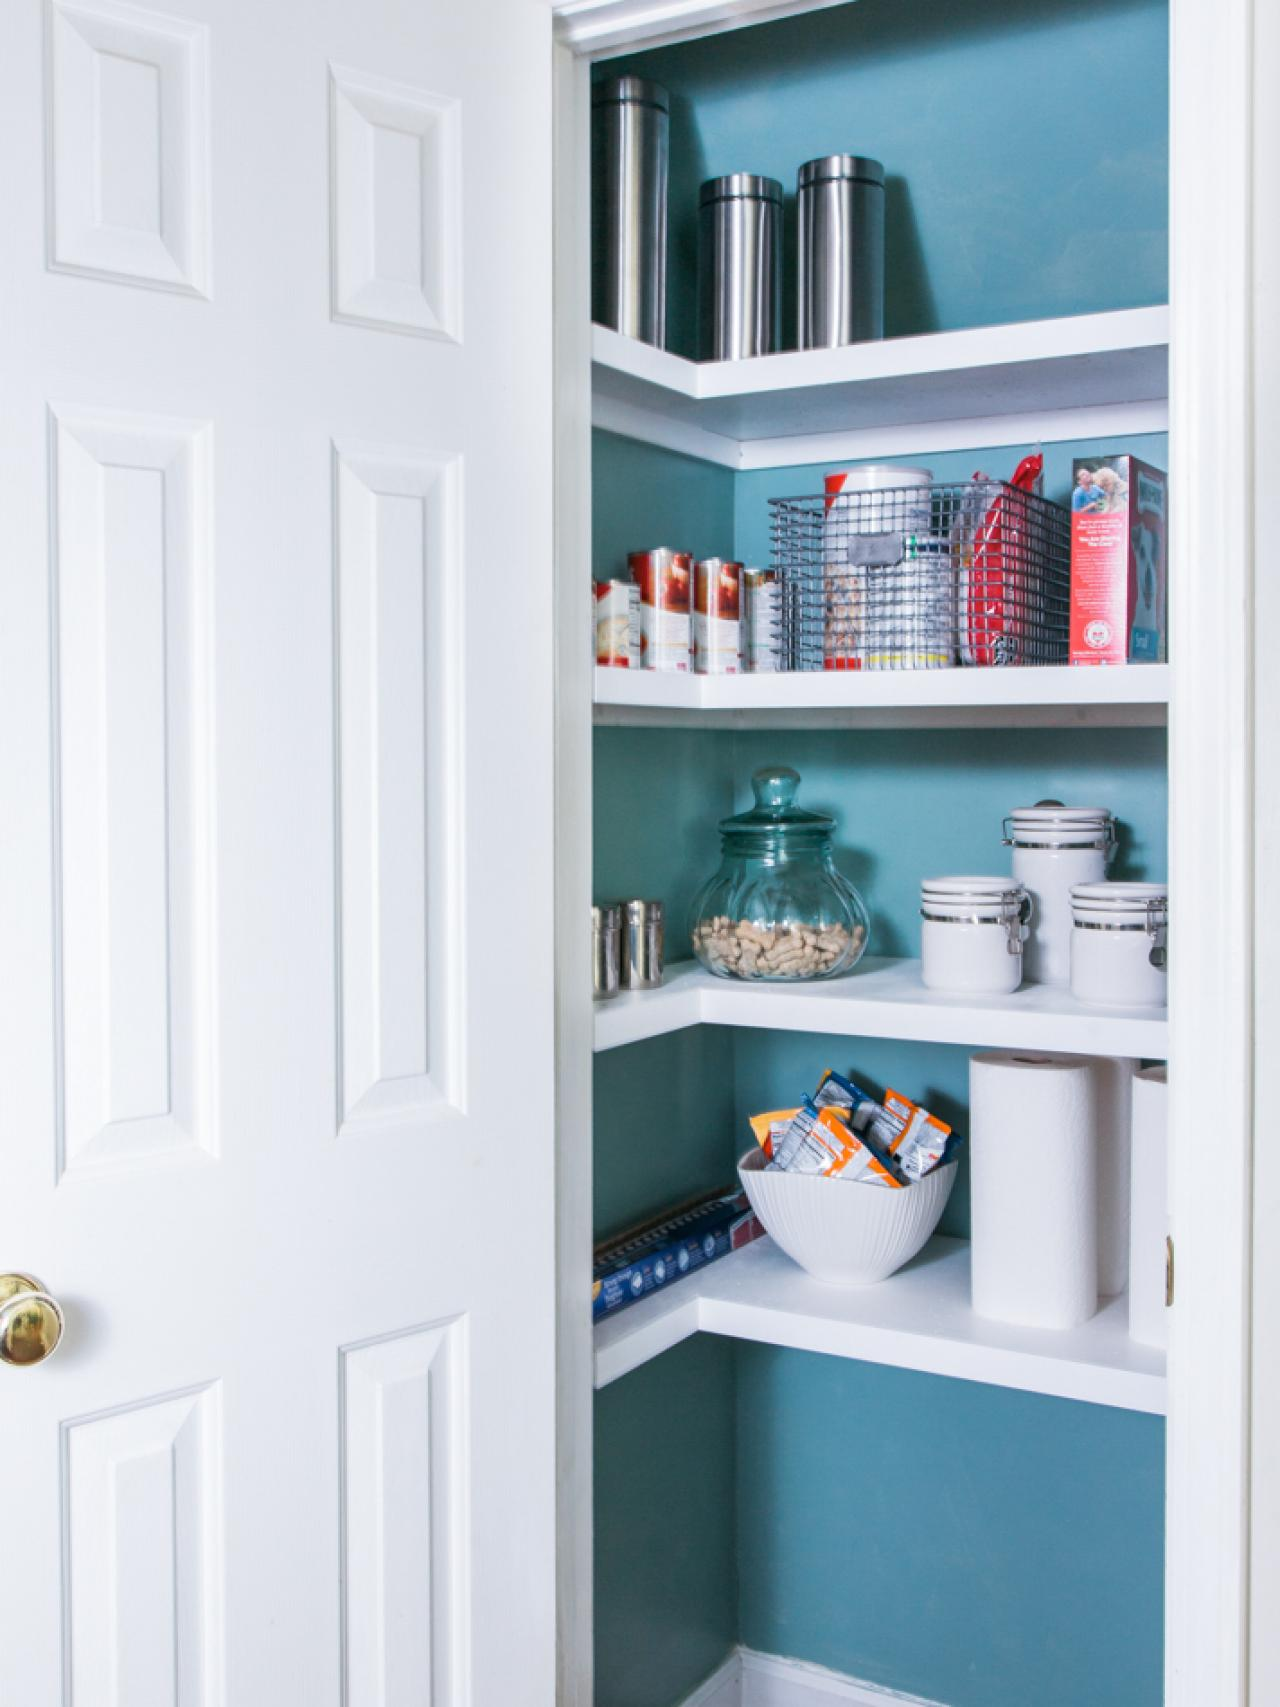 Unique how to replace pantry shelving rzpkxbb